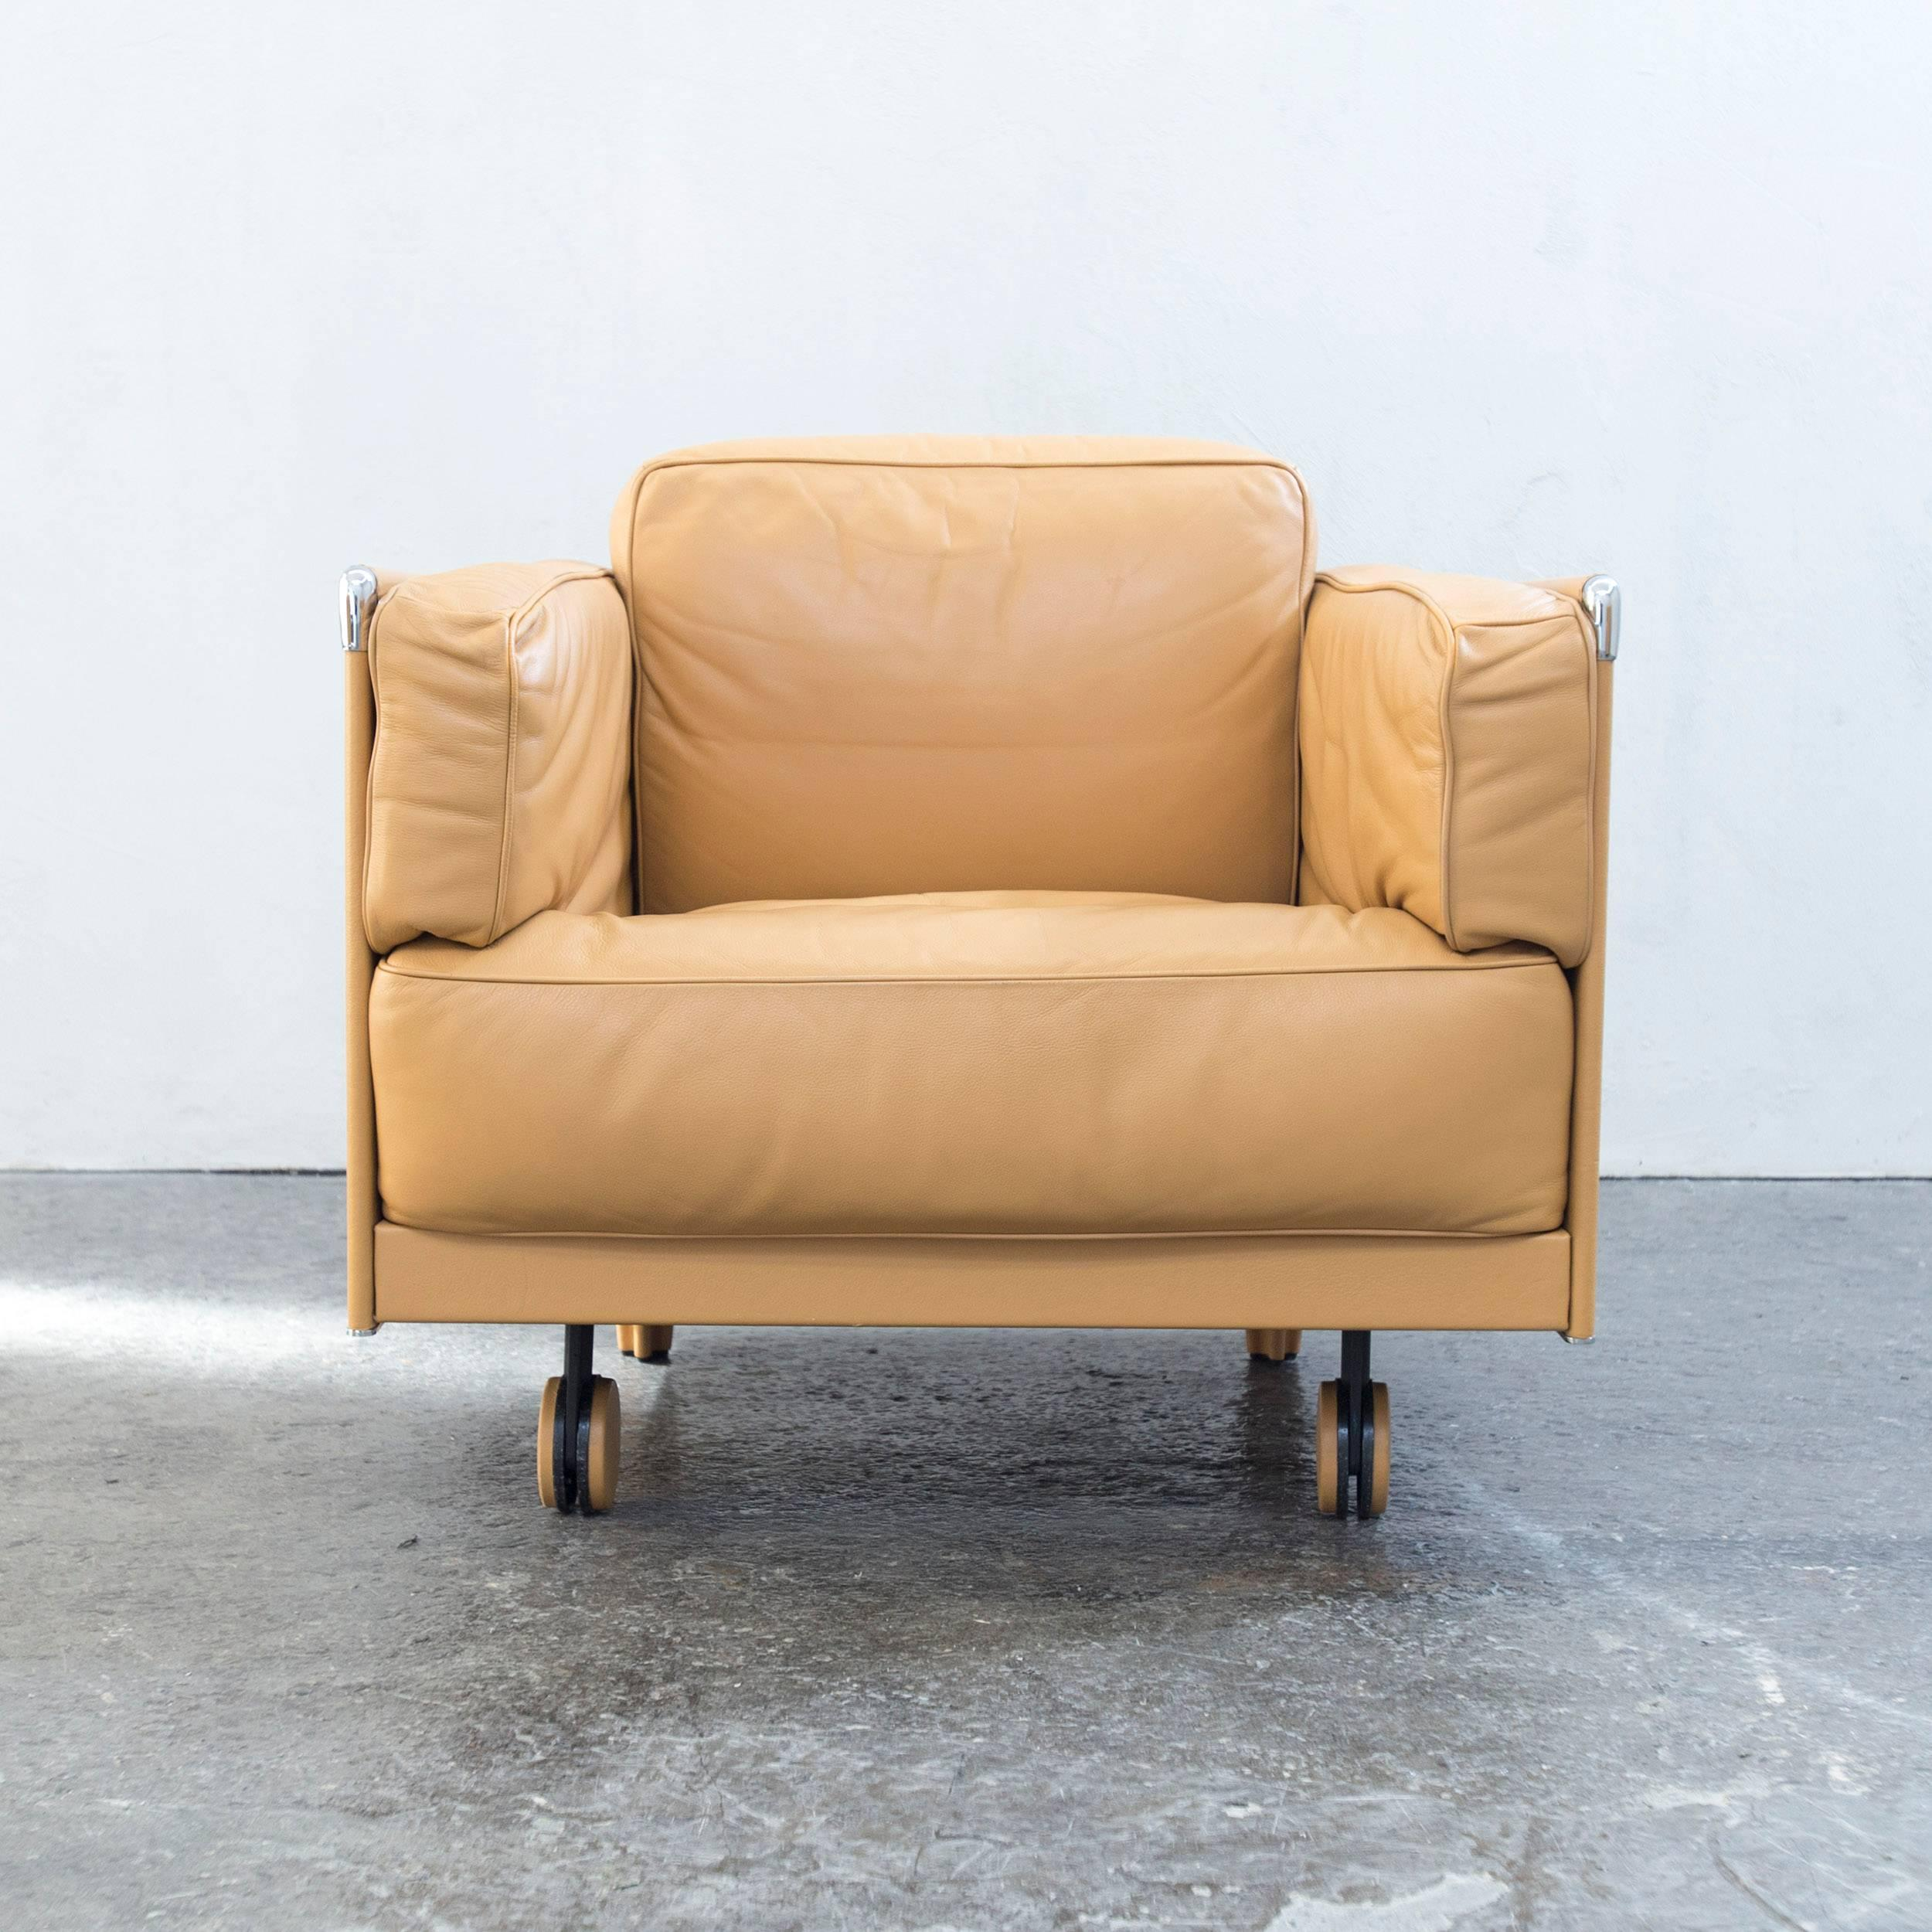 Mustard Yellow Colored Original Poltrona Frau Twice 1999 Designer Leather  Chair In A Minimalistic And Modern